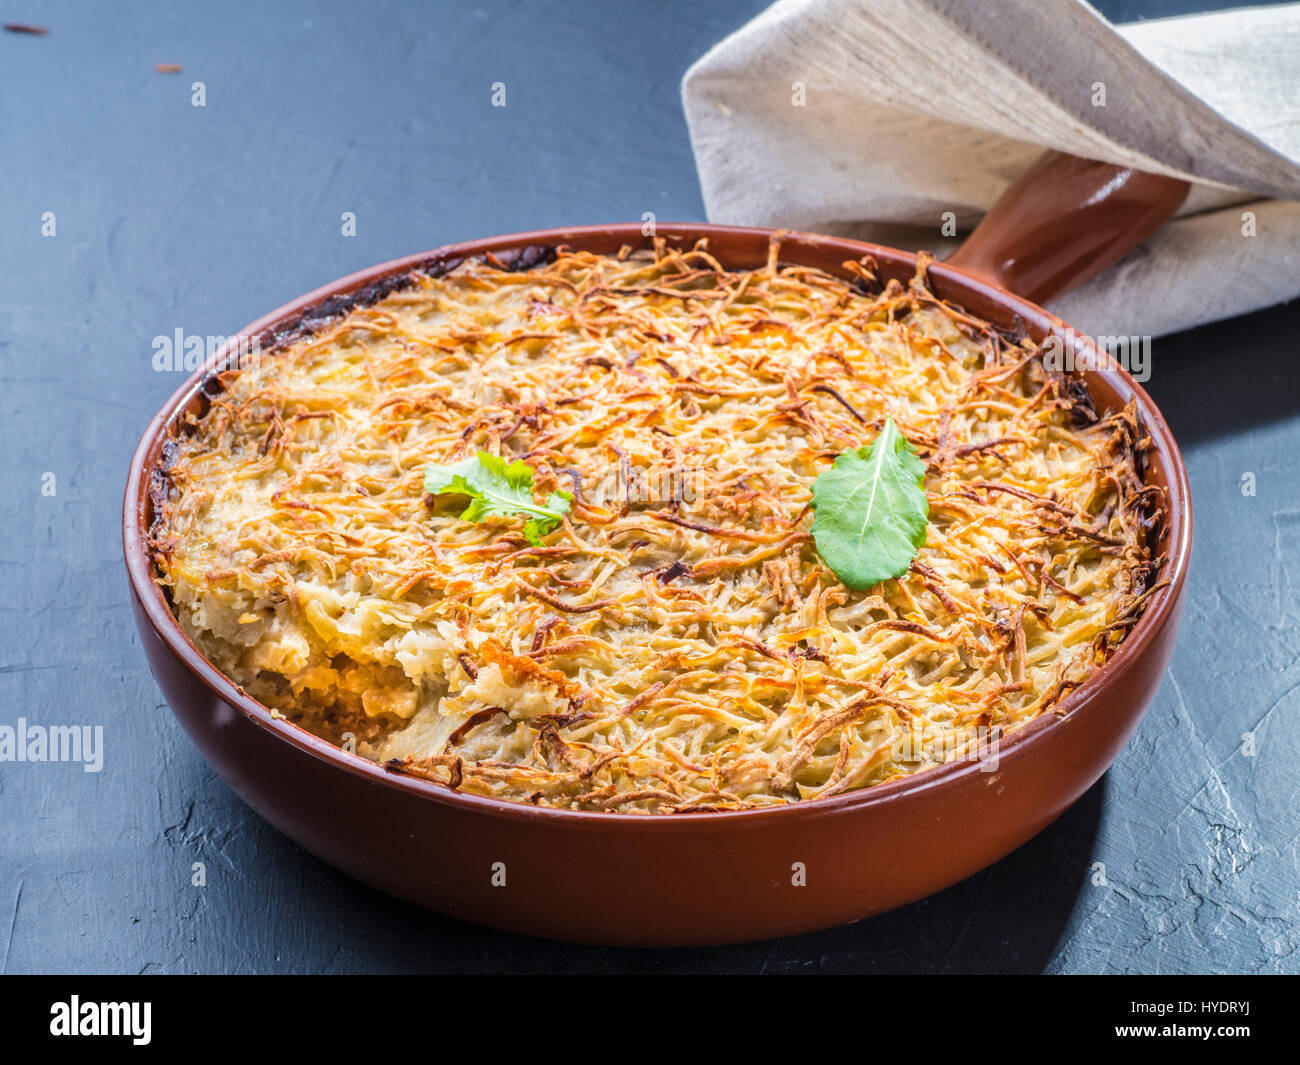 Close up view of appetizing potato casserole with fish, eggs